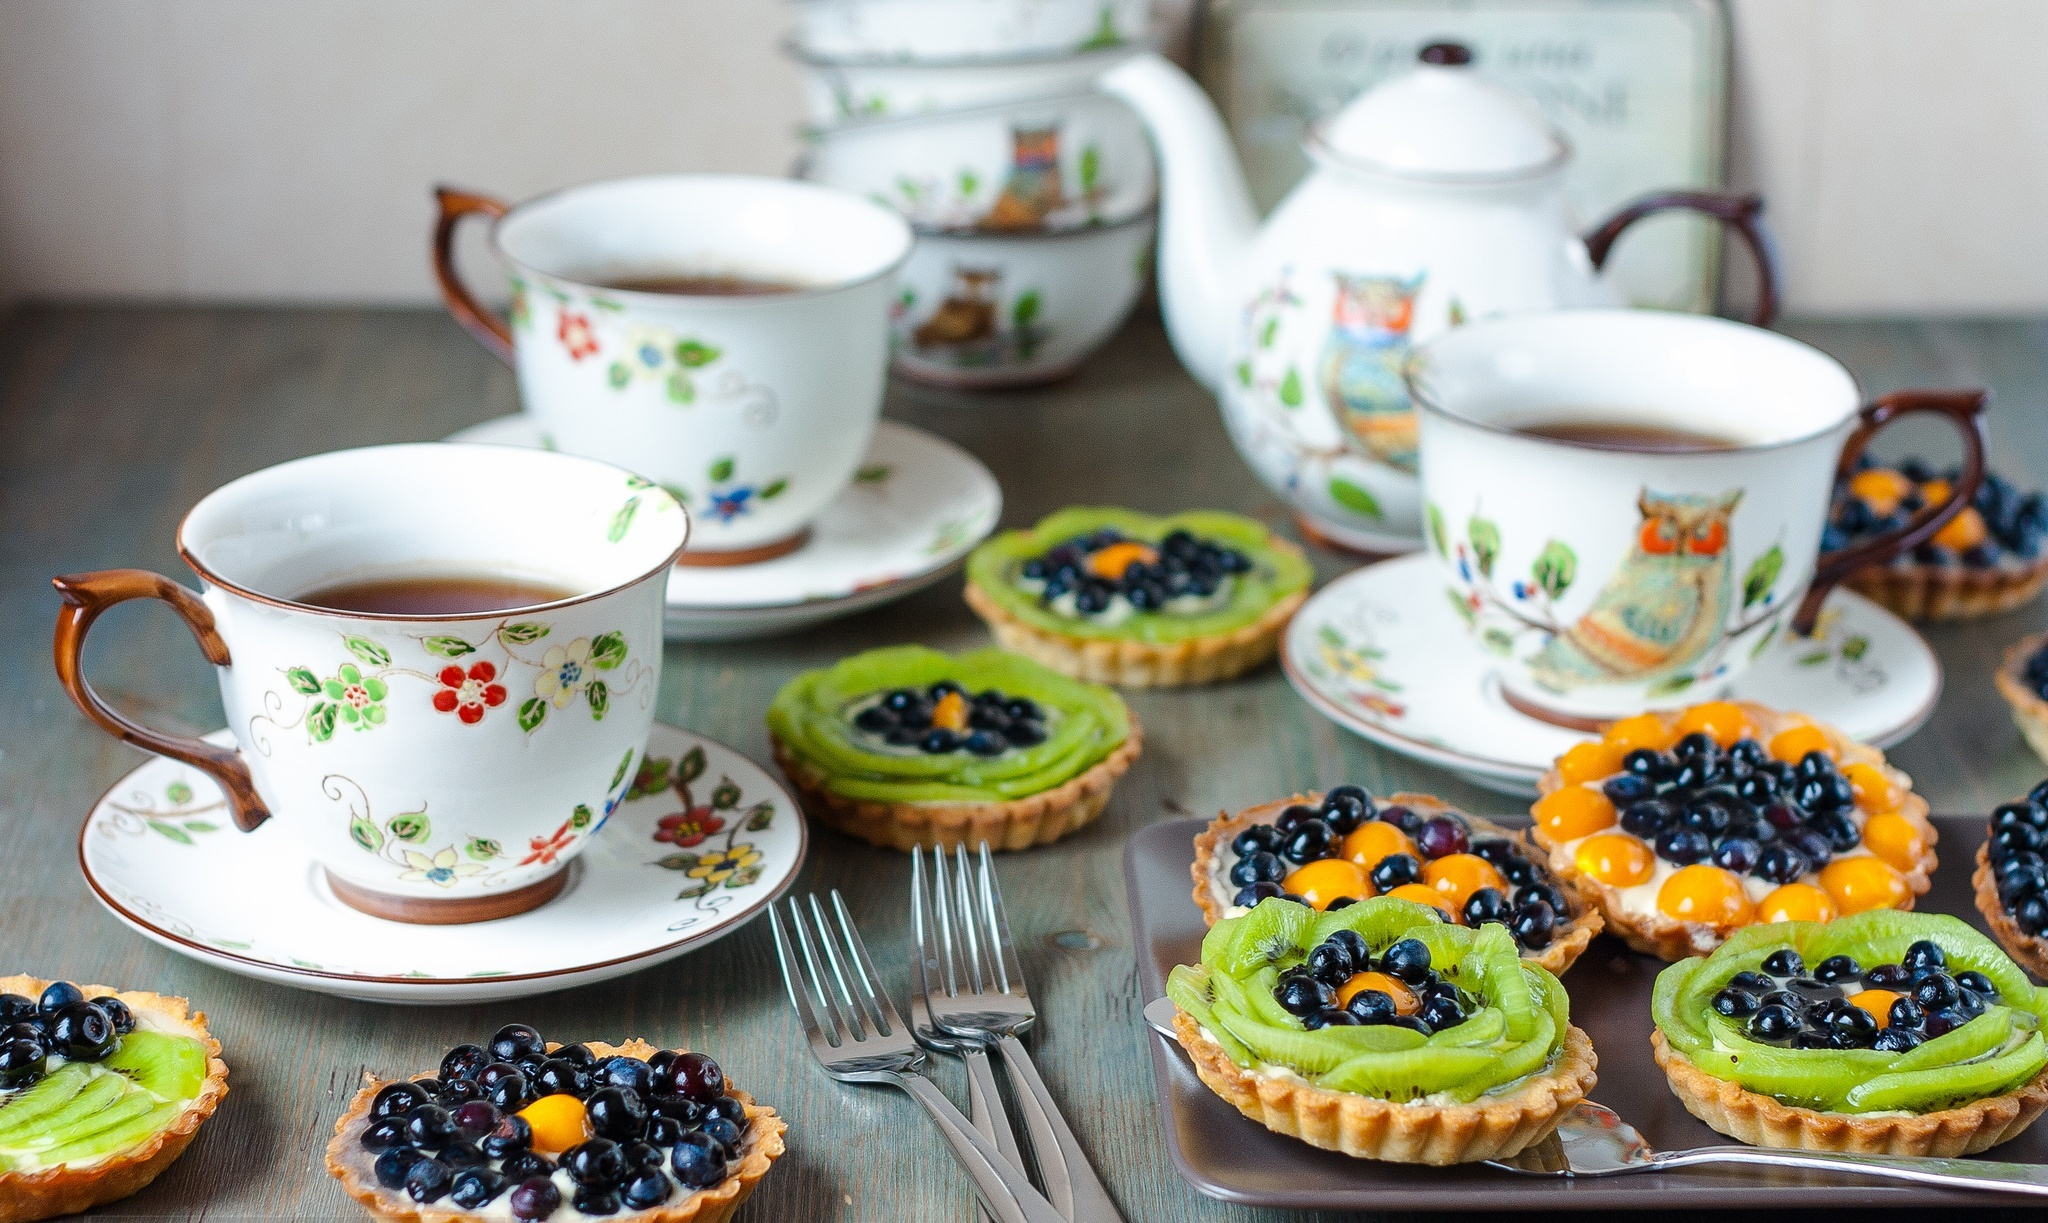 tart-cup-tea-fruit-dessert